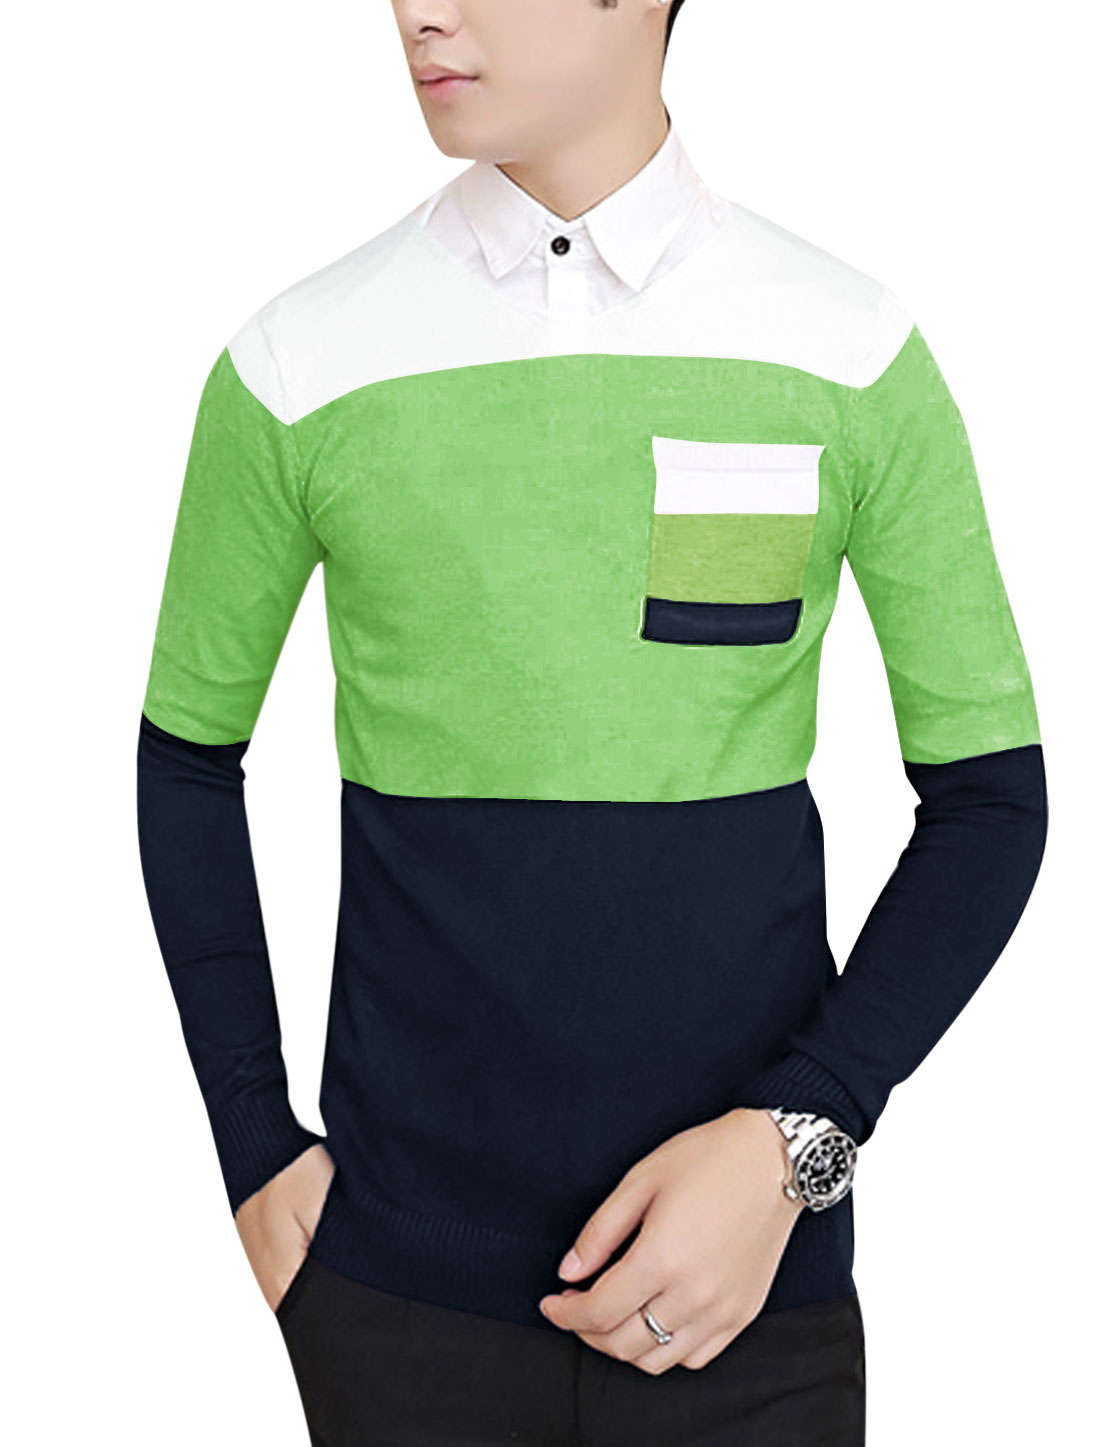 Men Color Block One Chest Pocket Knit Shirt Apple Green Navy Blue S